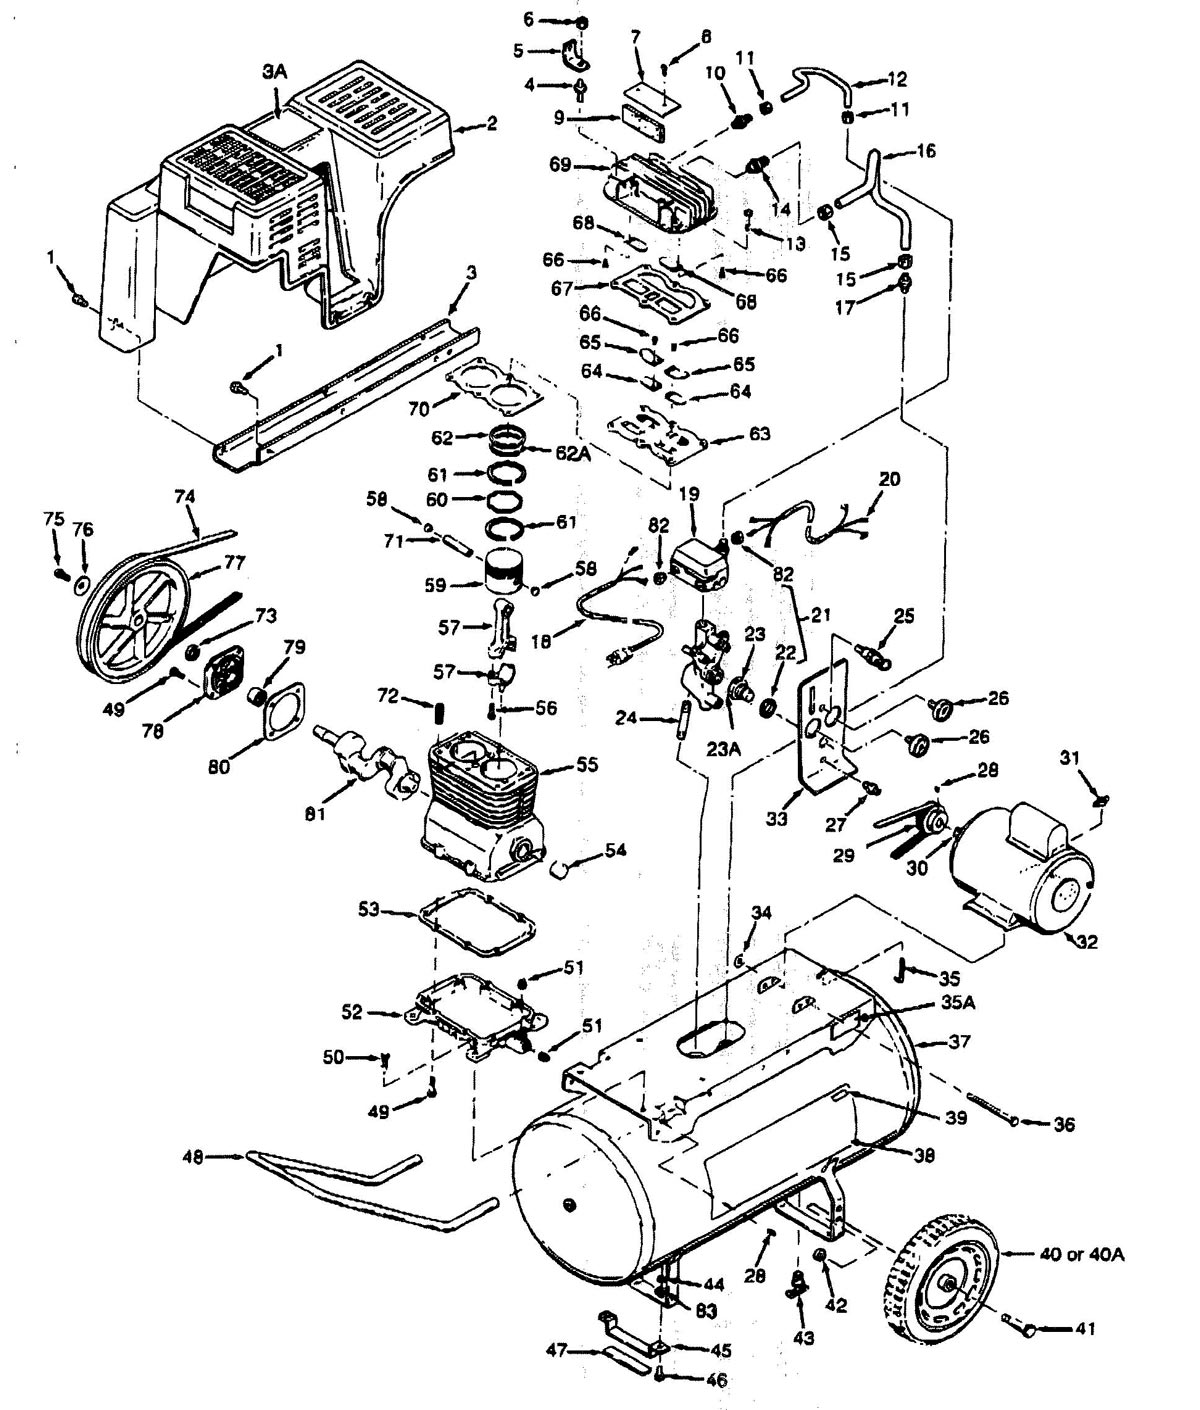 919.176210, 919.176320 - Portable Oil-Bath Electric Air Compressor Parts schematic